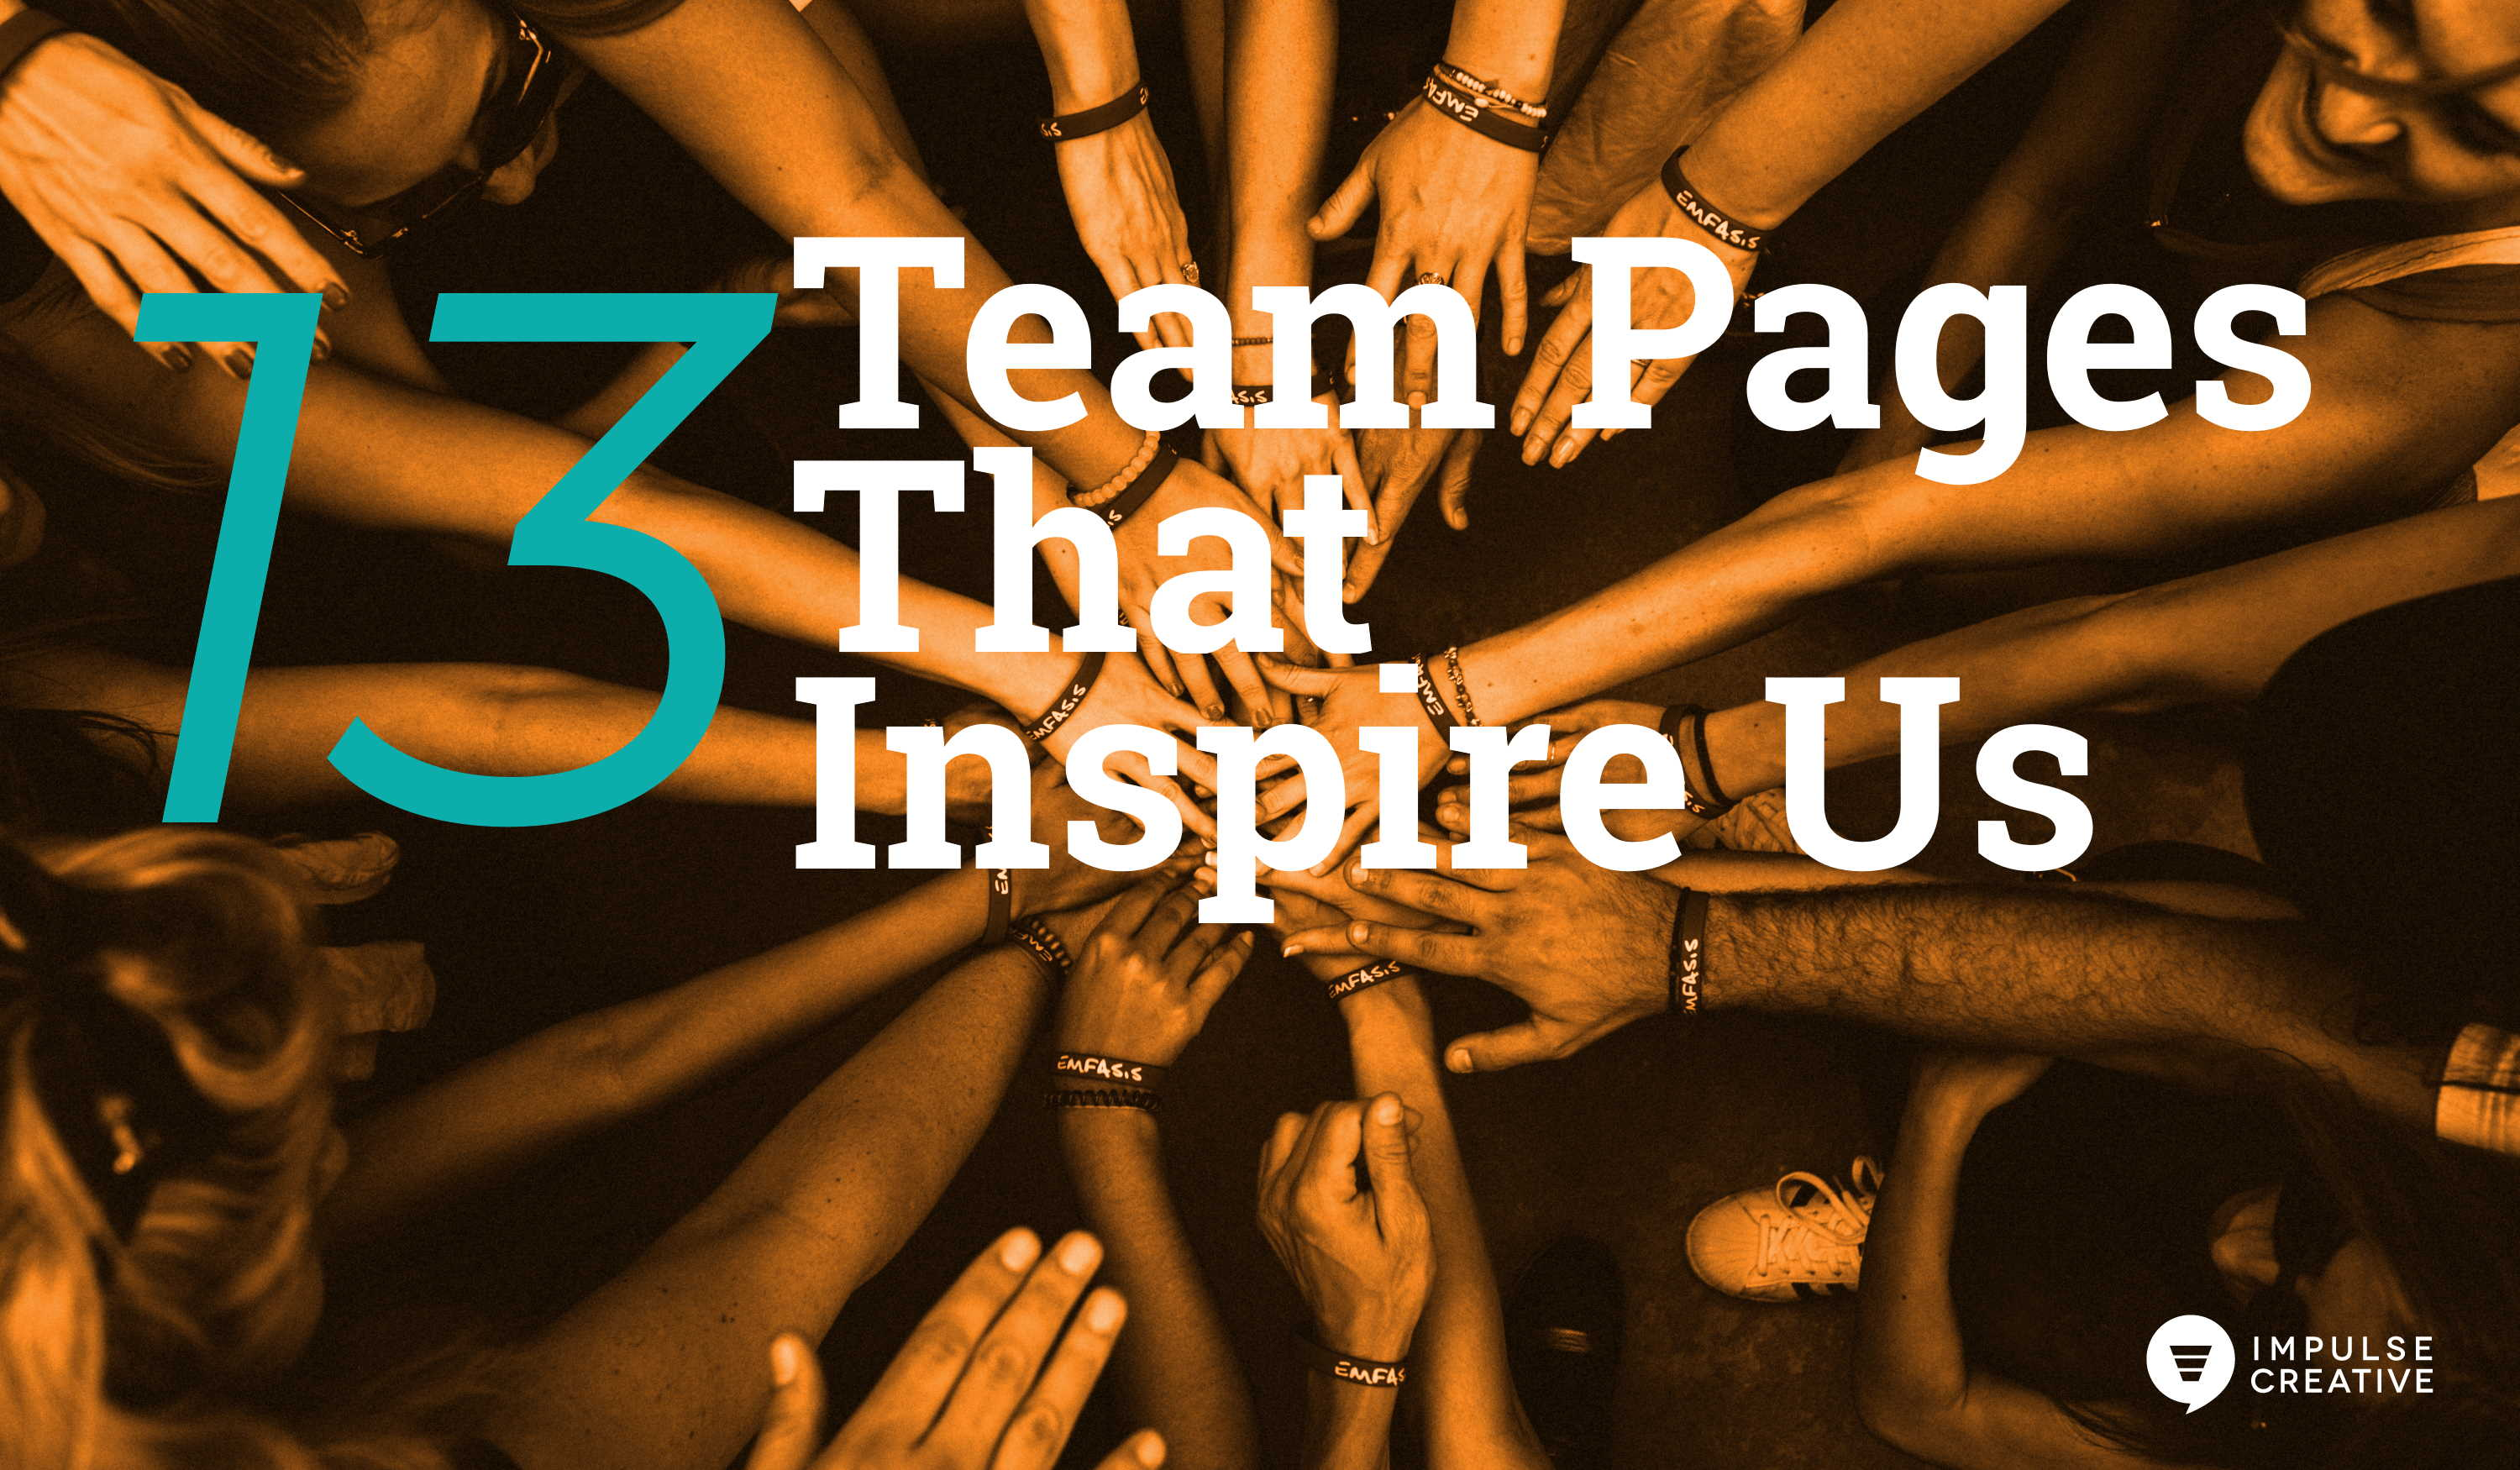 13 Team Pages That Inspire Us